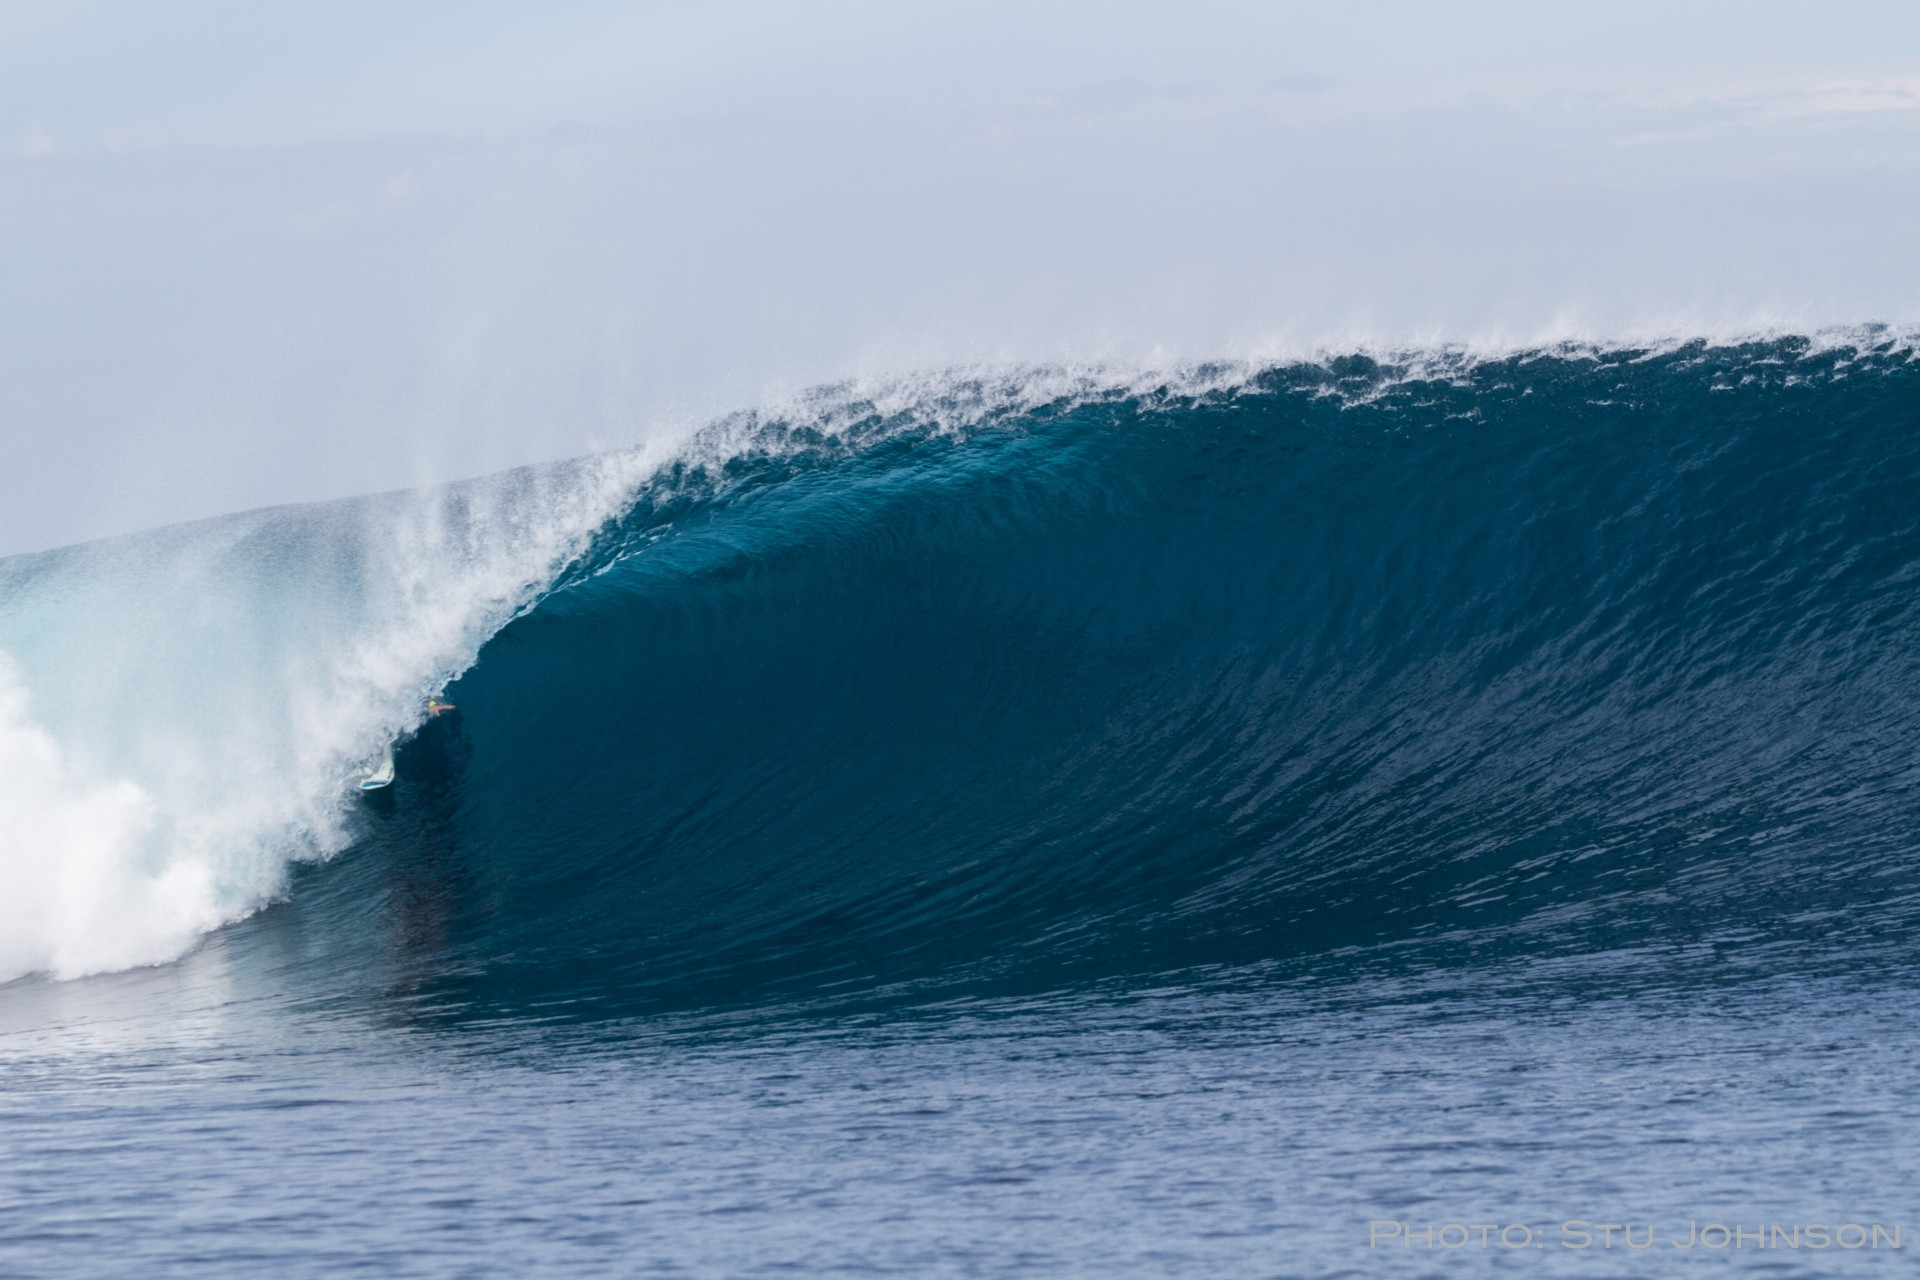 Stuart Johnson 's photo of Tavarua - Cloudbreak